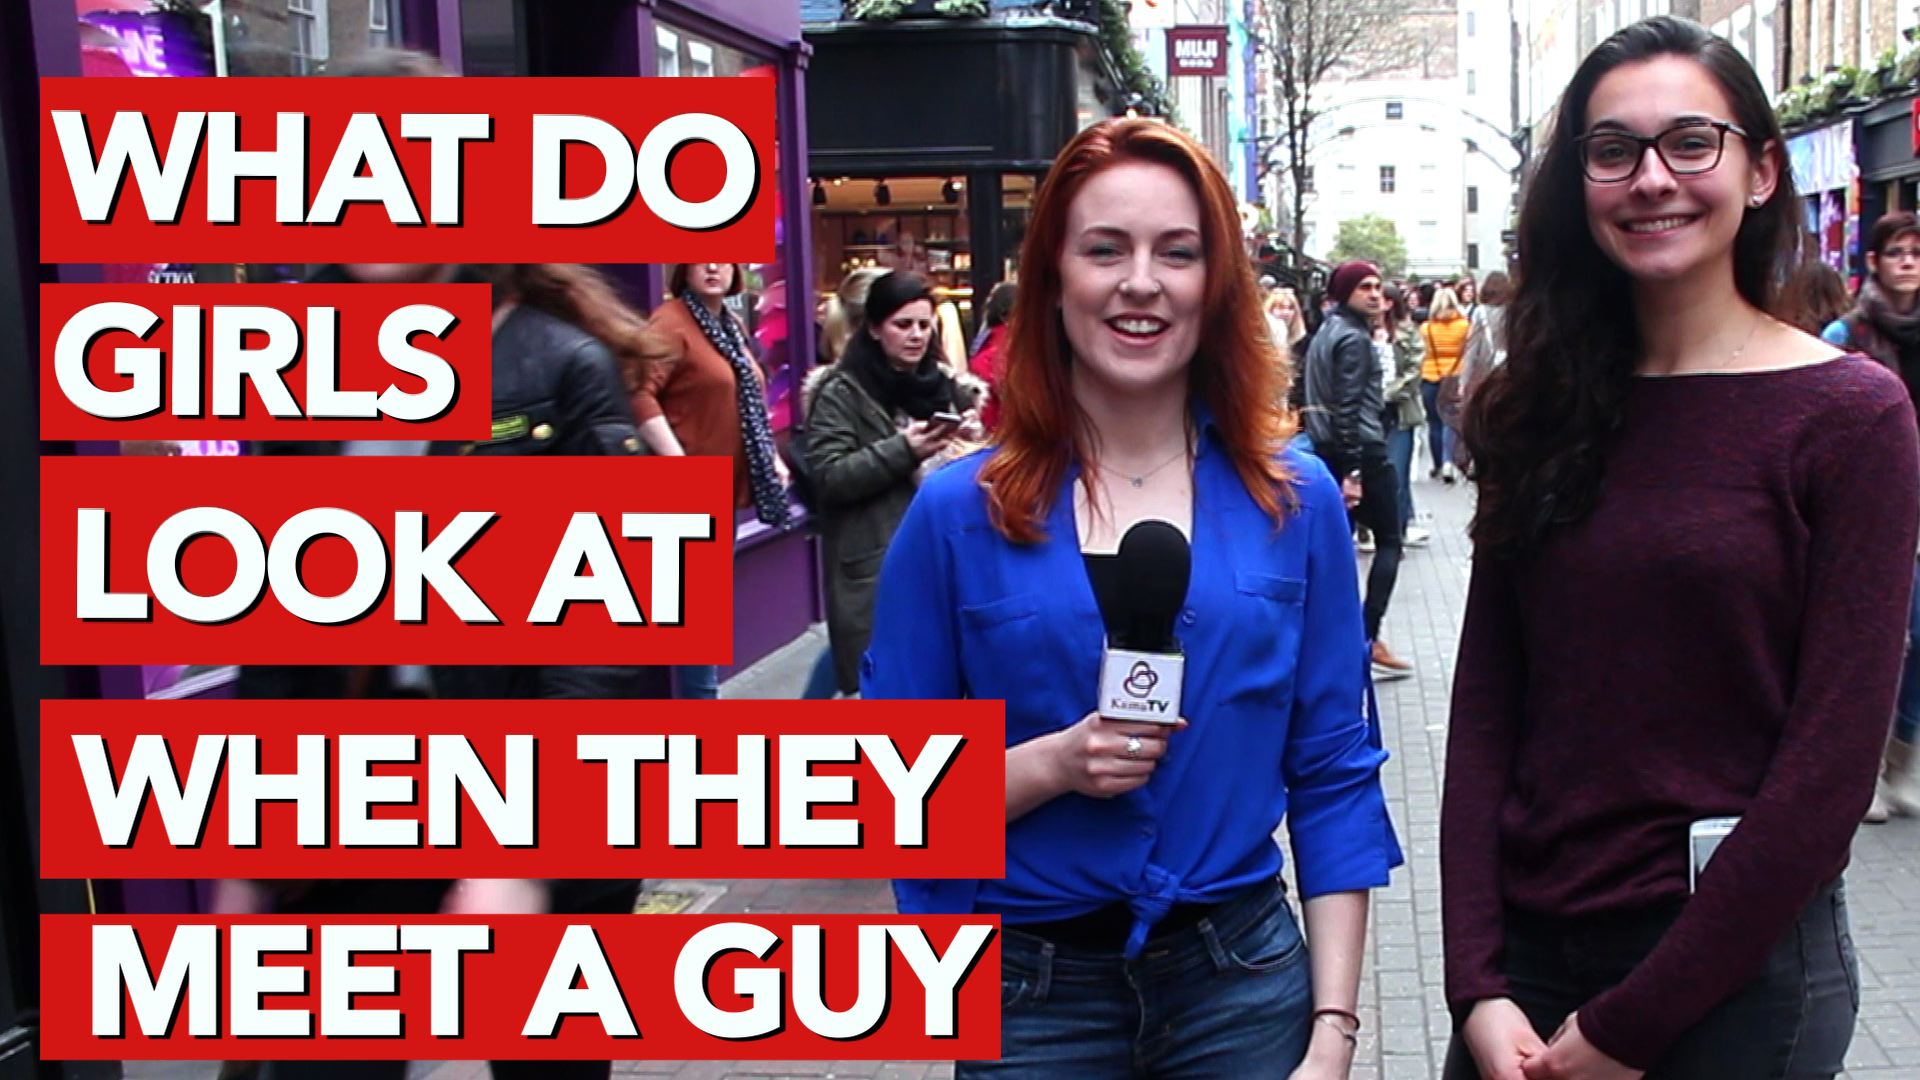 What do girls look at when they meet a guy